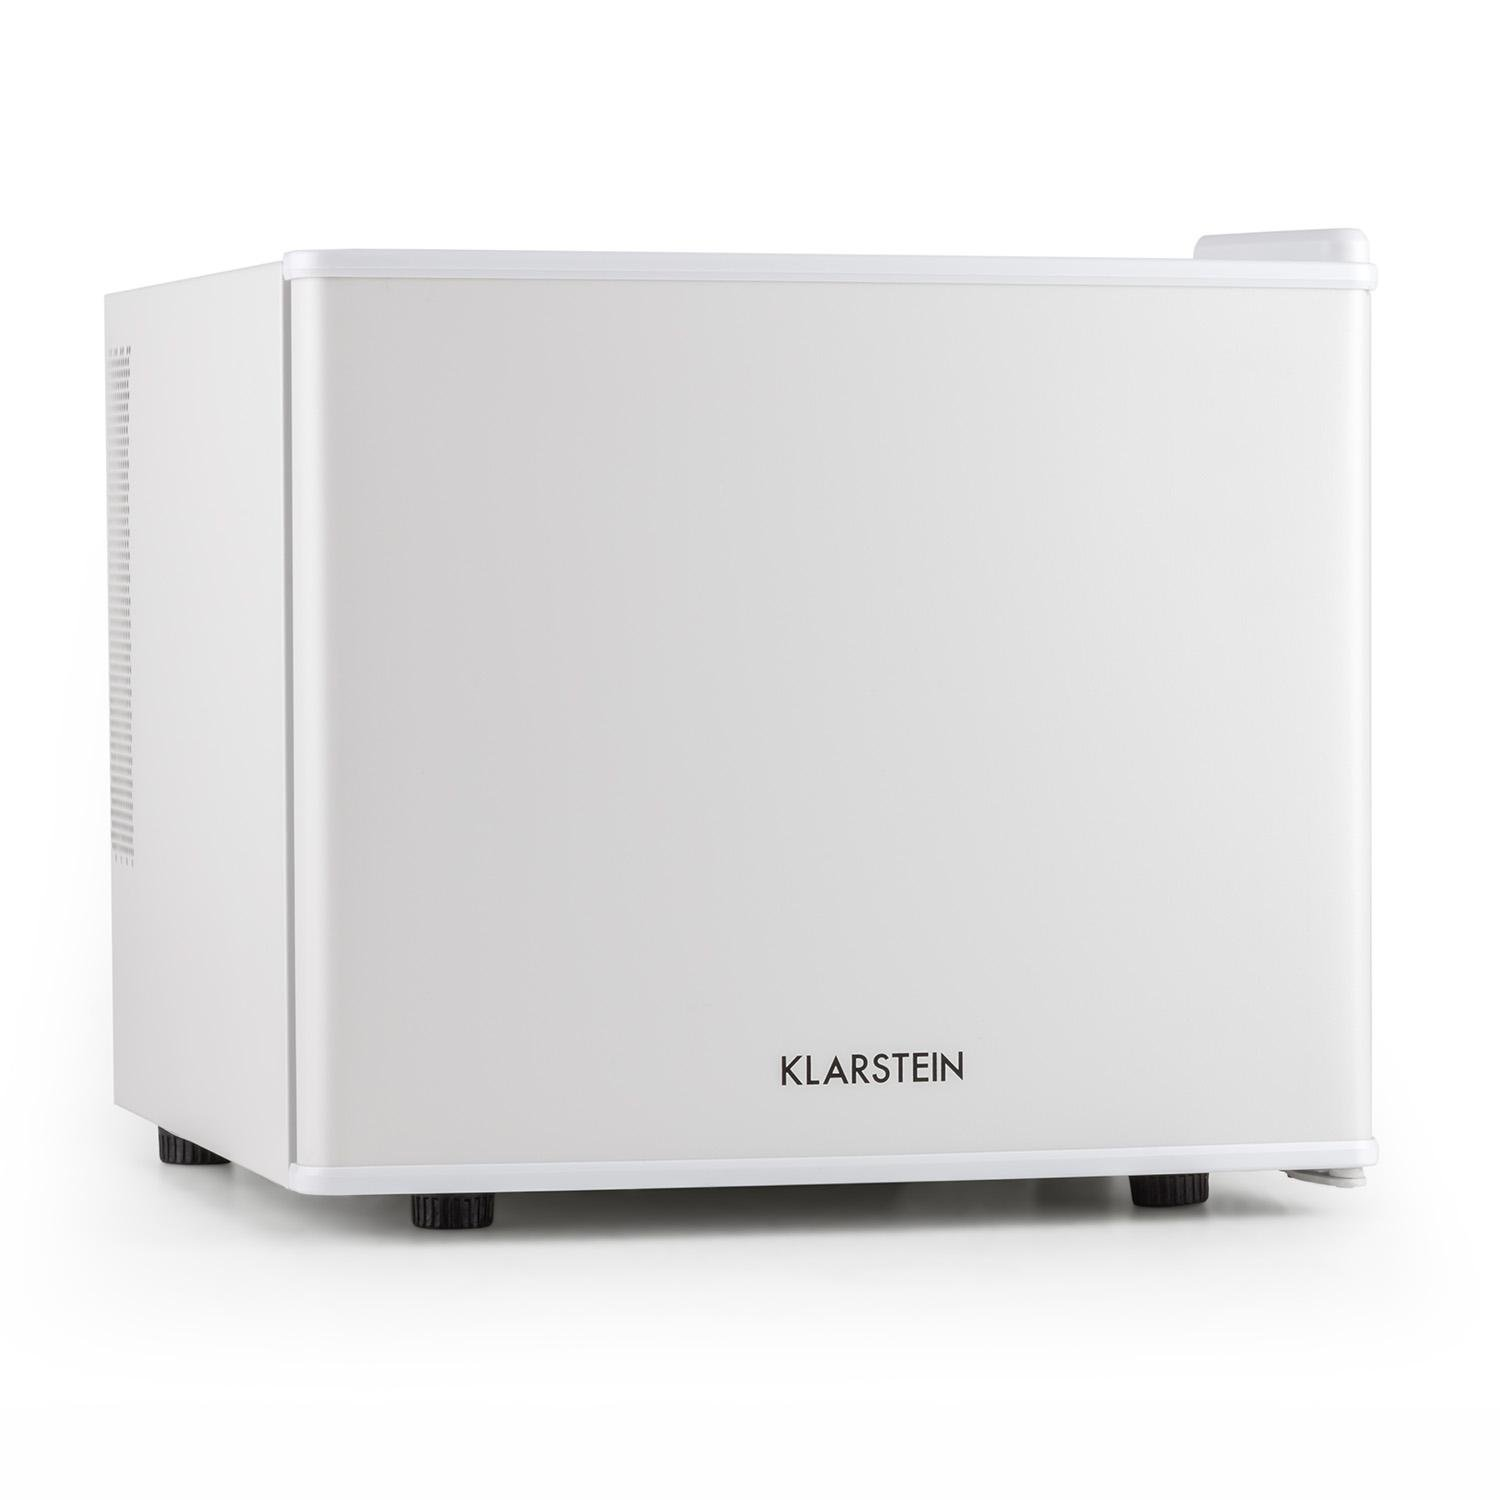 Klarstein Secret Hiding Place Mini Fridge • Refrigerator • Cooler • 17 Litres • 50W • Class A+ Energy Efficiency • Space-Saving • Adjustable Cooling Temperature Between 4.5 and 15 ° C • White [Energy Class A+]